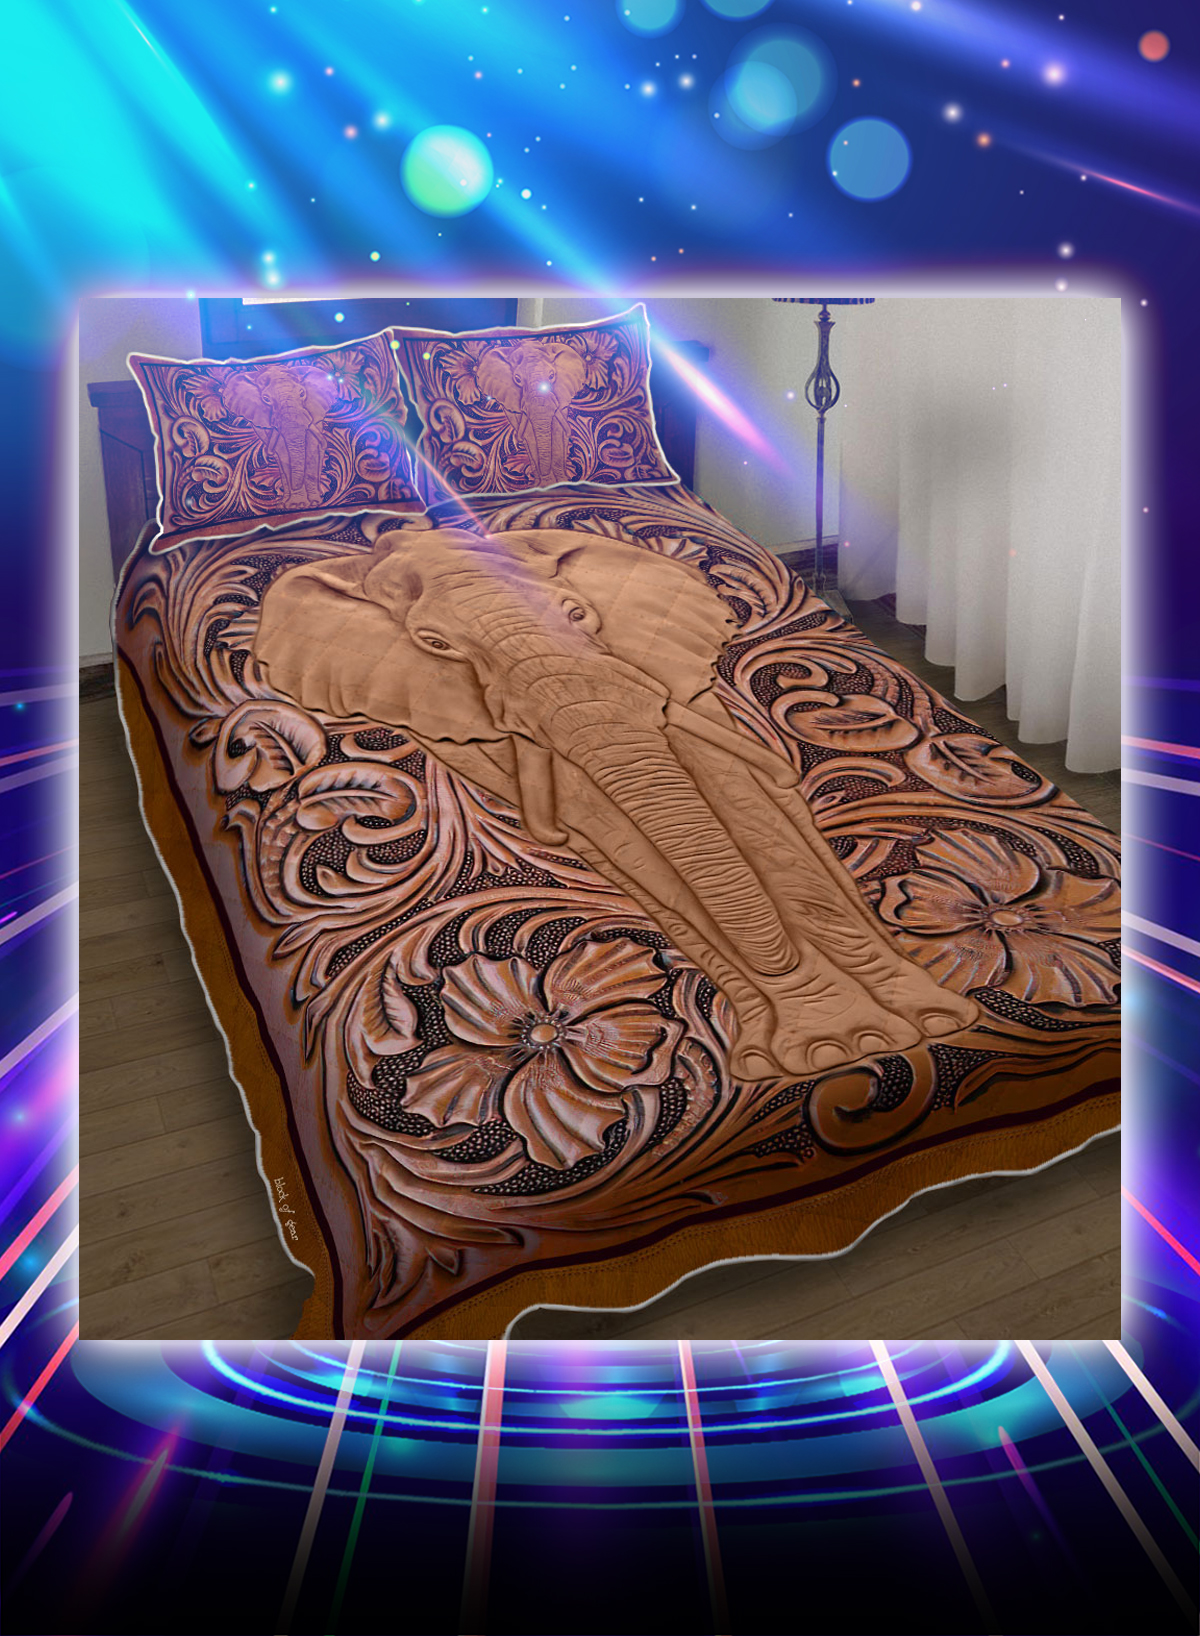 Elephant wood sculpture bed set - Picture 1